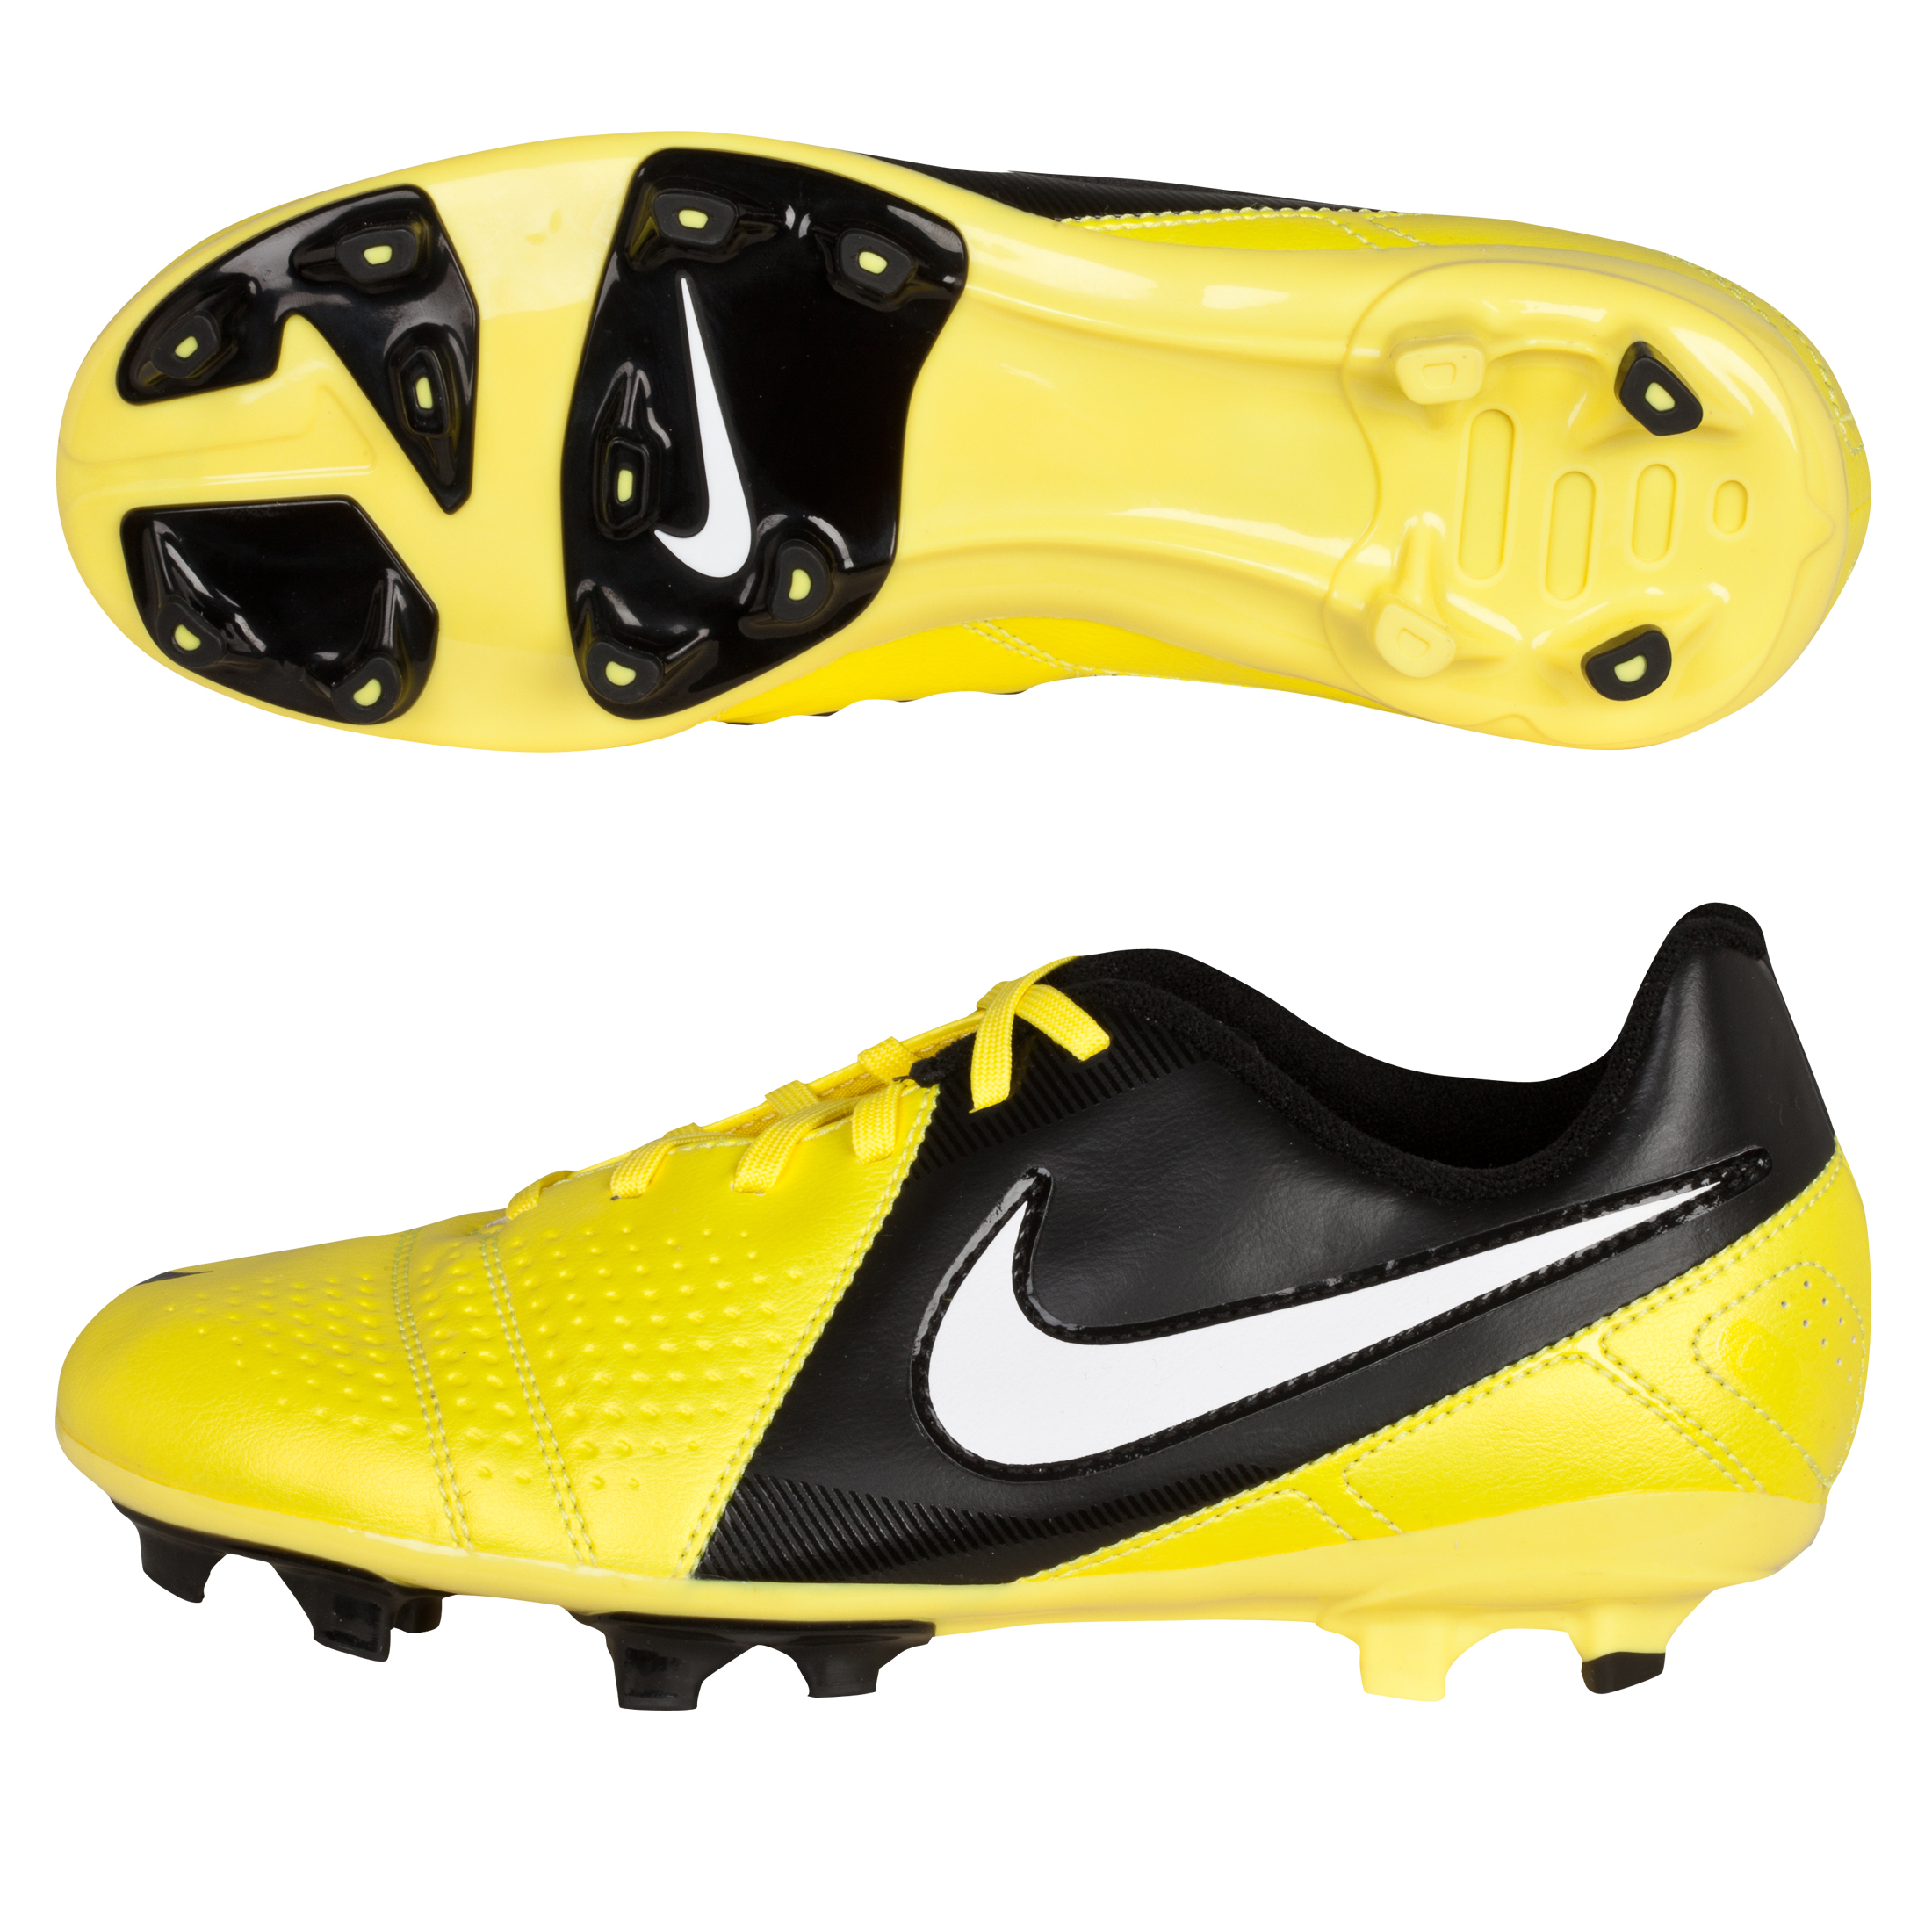 Nike CTR360 Libretto III Firm Ground Football Boots - Sonic Yellow/White/Black - Kids